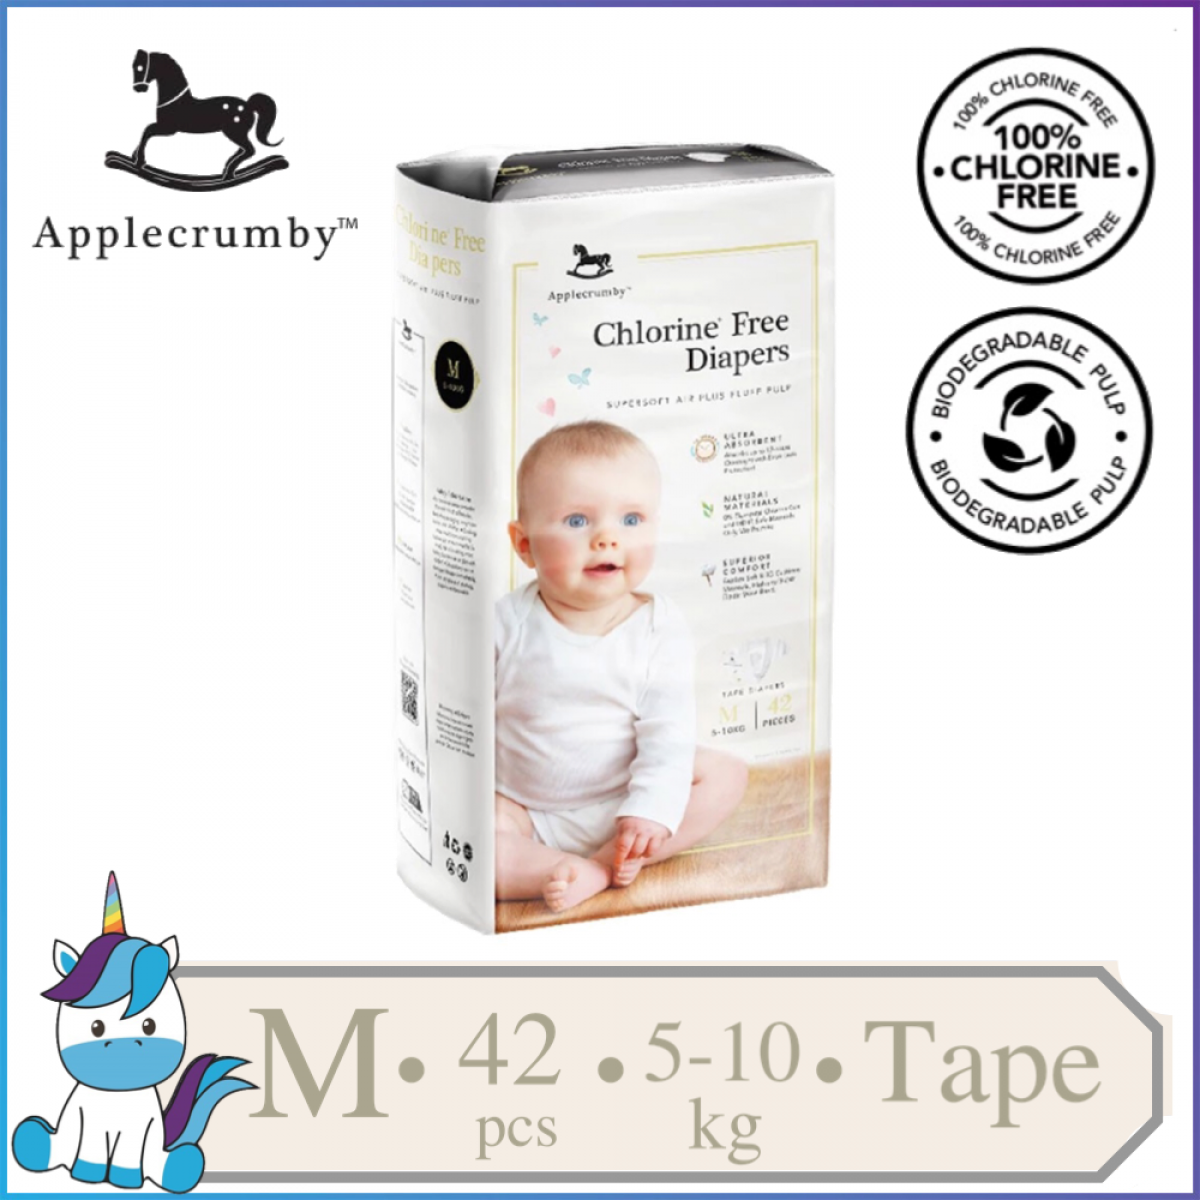 Applecrumby™ Chlorine Free Premium Baby Diapers Tape Size M || 42 pieces (5-0kg)